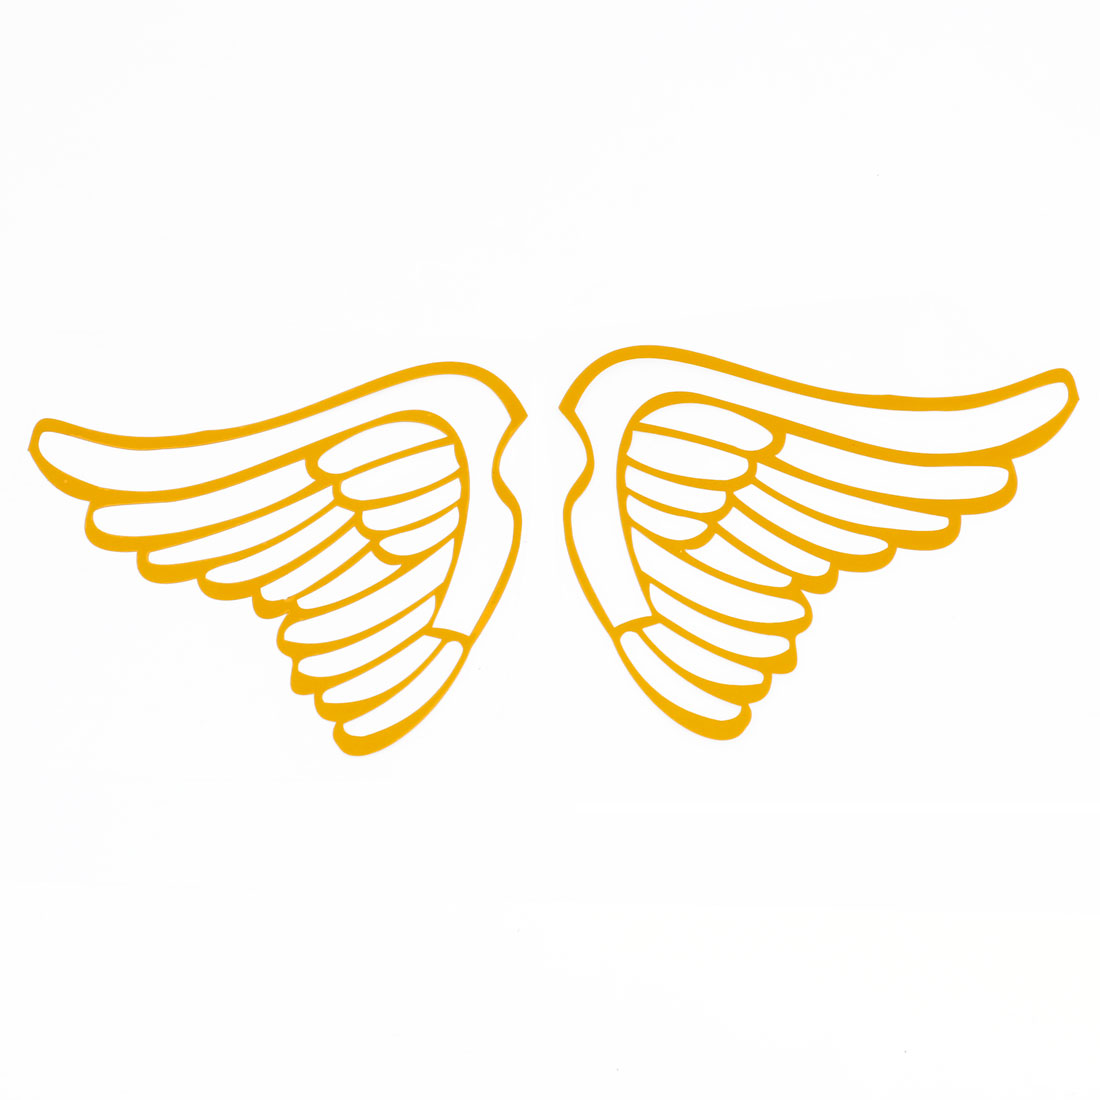 Pair Angel Wings Shape Yellow Decal Sticker for Van Car Truck